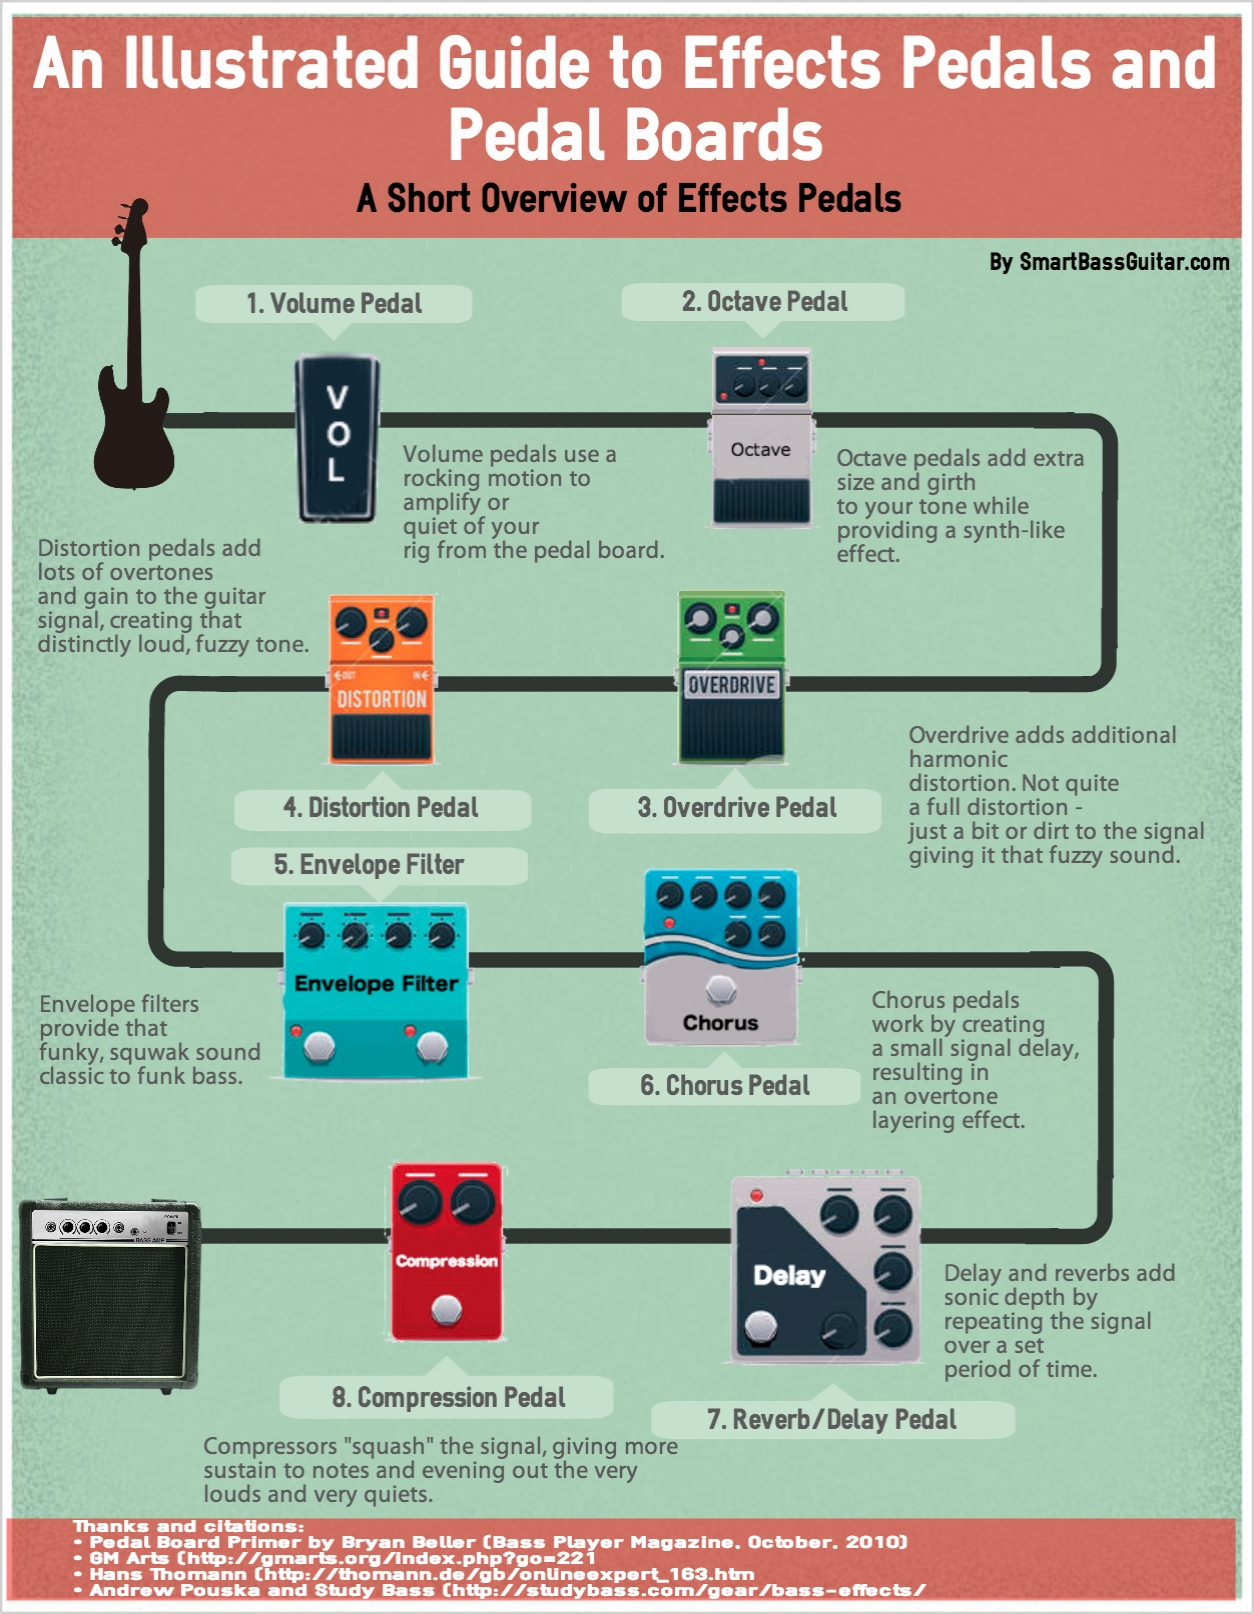 the best bass guitar effects pedals guide you 39 ll ever see infographic